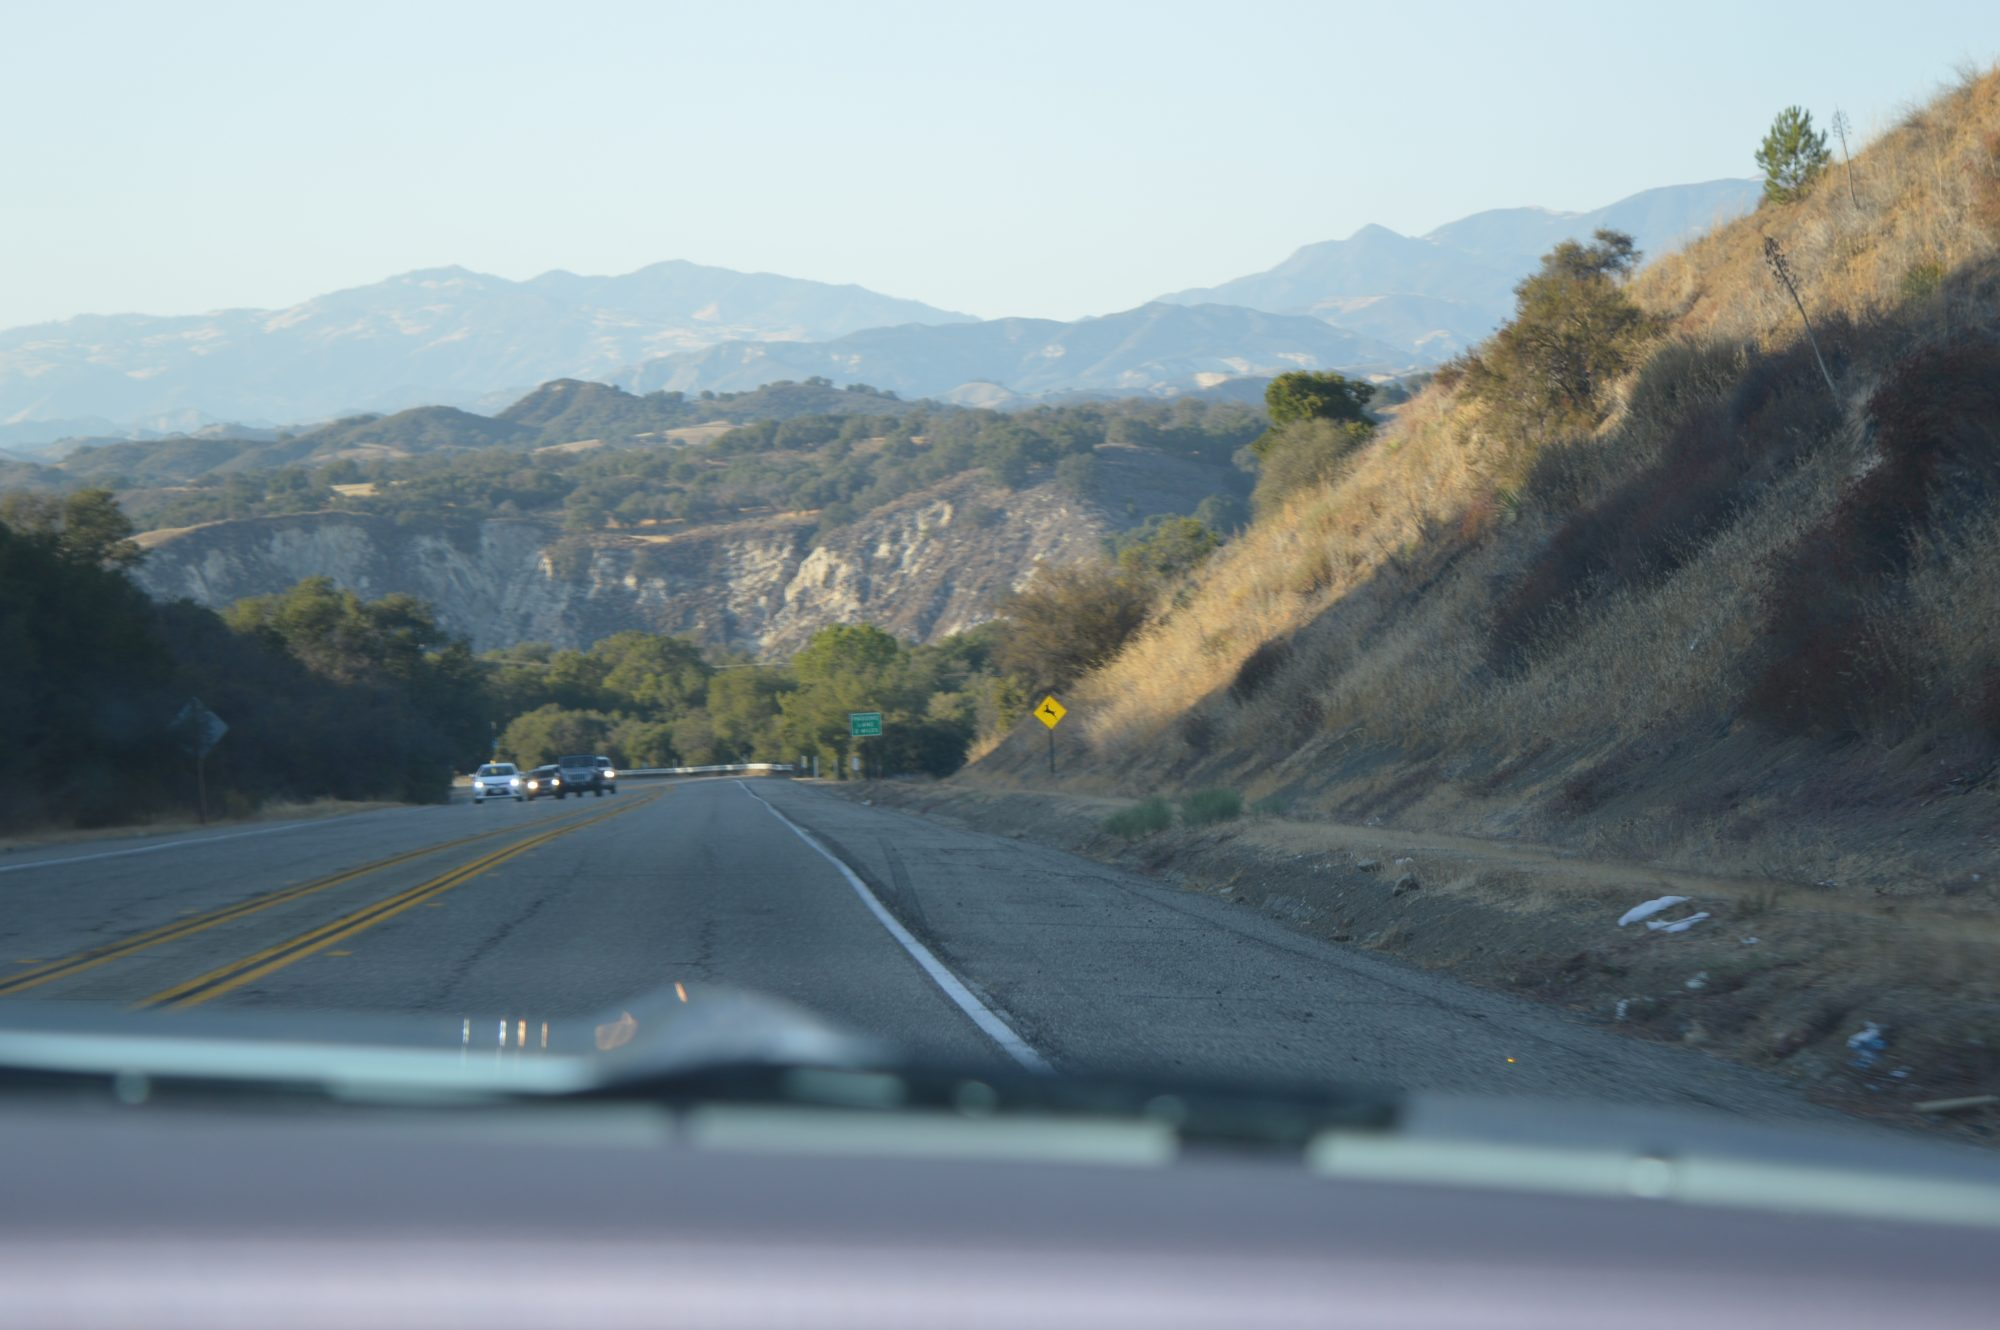 Driving to Cambria